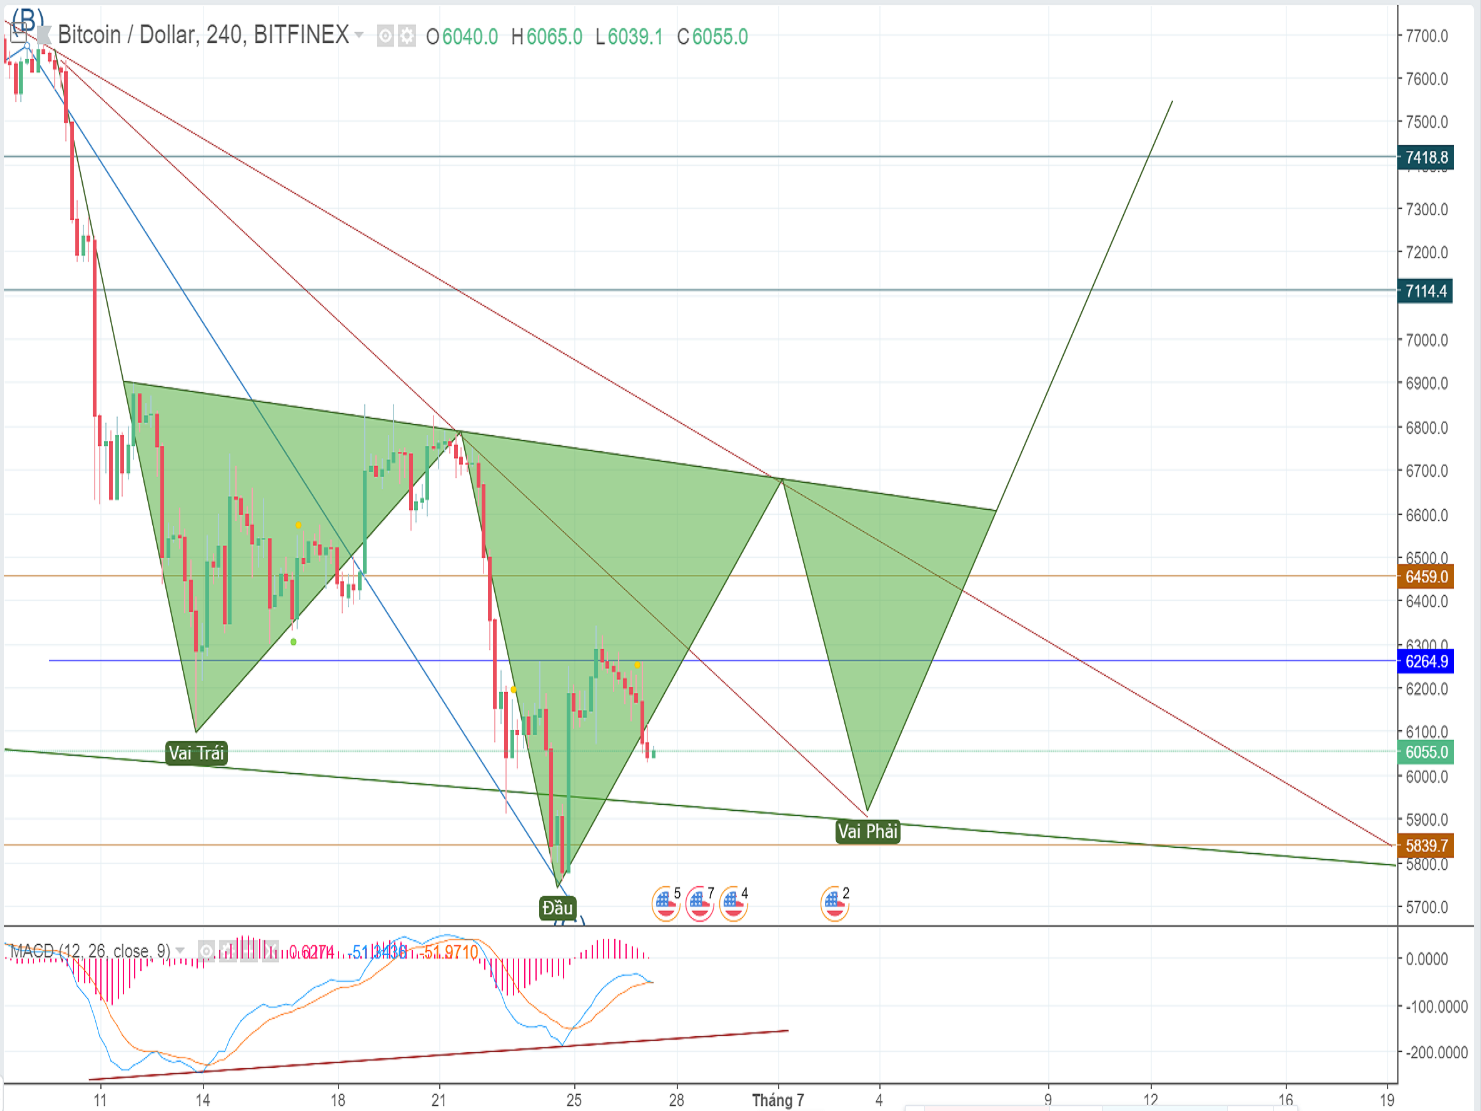 Bitcoin price analysis and forecast (June 27th): Red lights cast shadow over crypto market